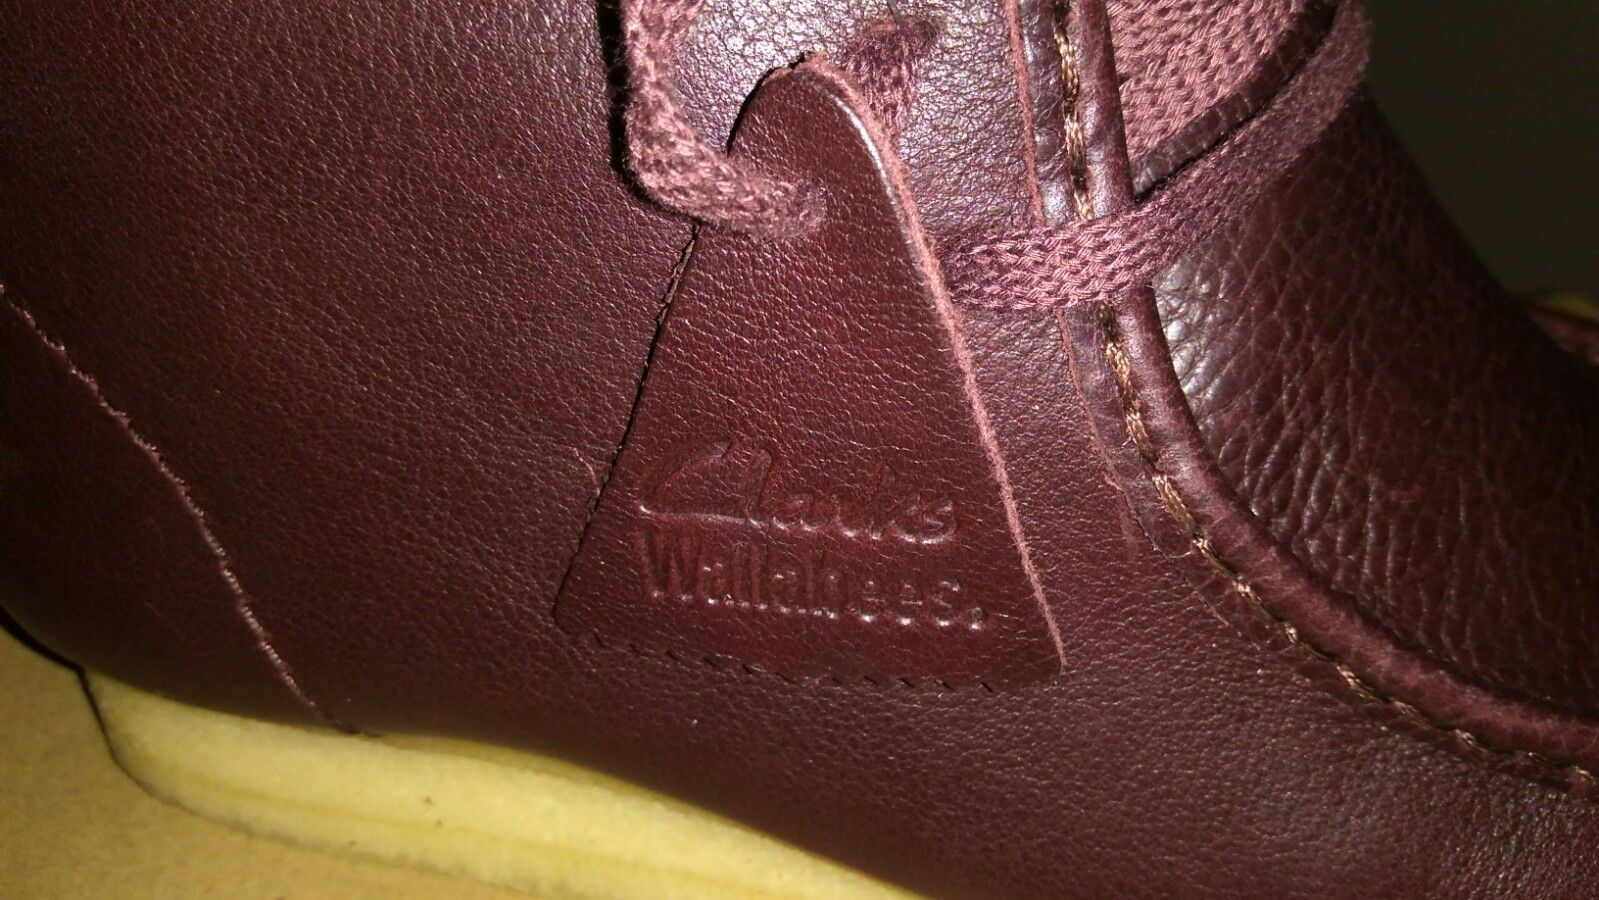 #ClarksUSA #limitededition in #BurgundyWallabee #tumbledleather -